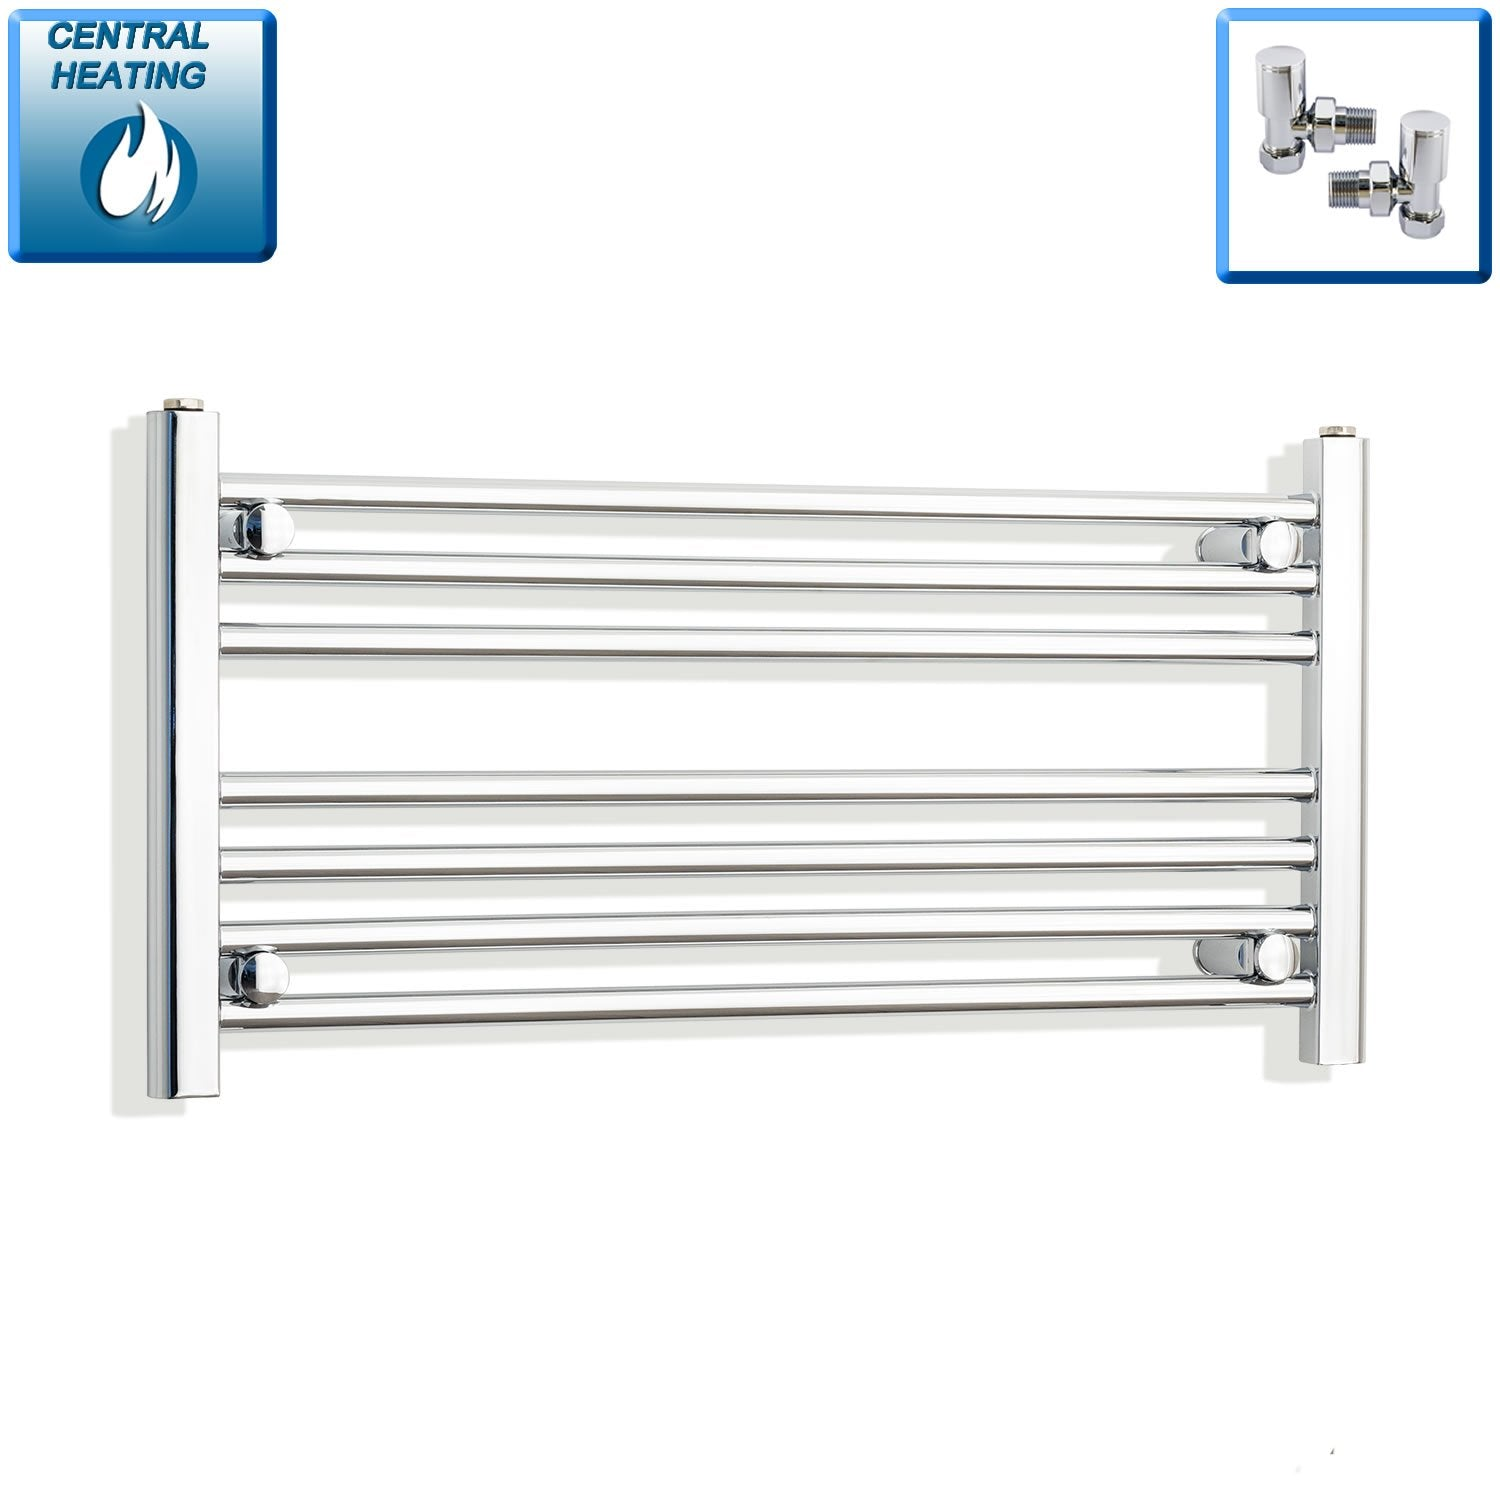 750mm Wide 400mm High Flat Chrome Heated Towel Rail Radiator HTR,With Angled Valve